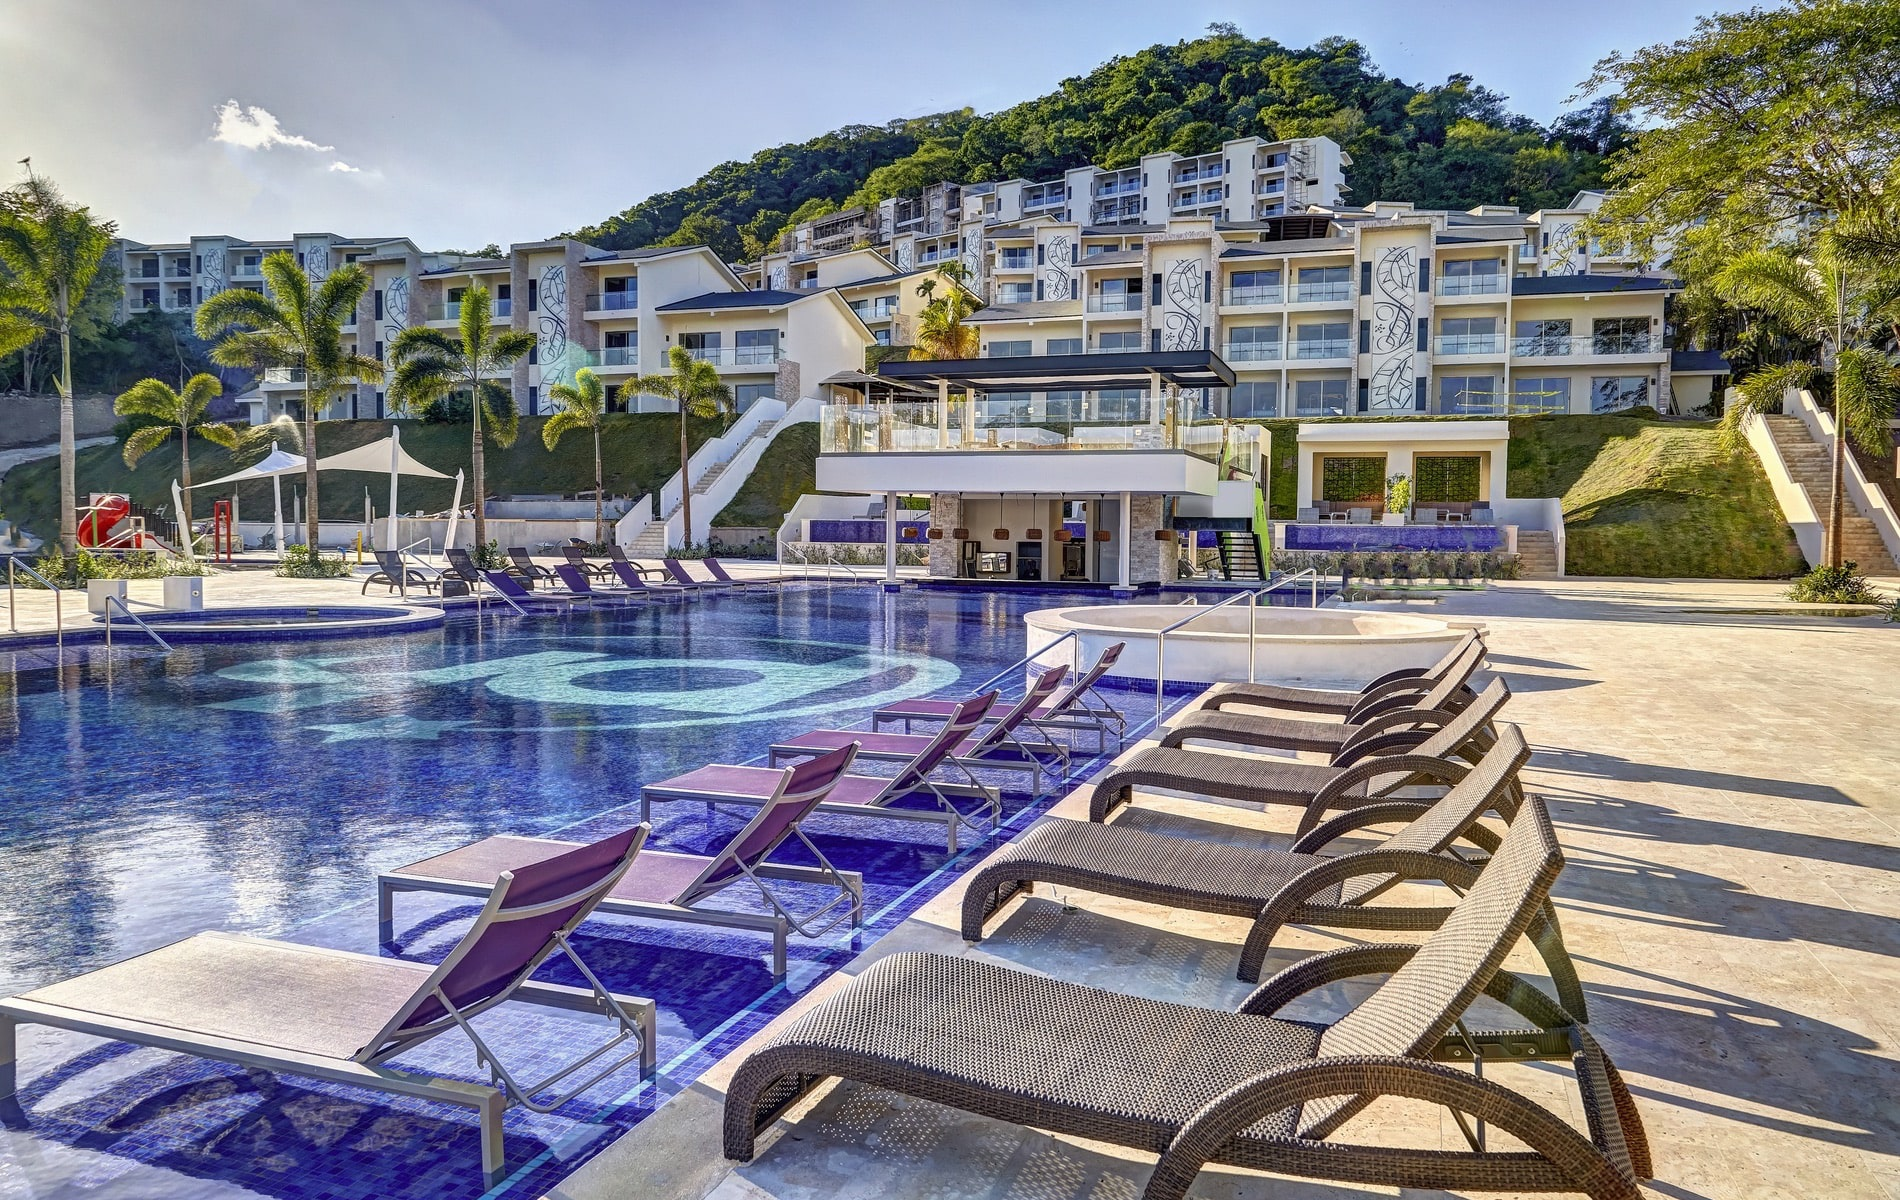 Planet Hollywood has come to Costa Rica with its new star-worthy, all-inclusive beach resort located on Culebra Bay.